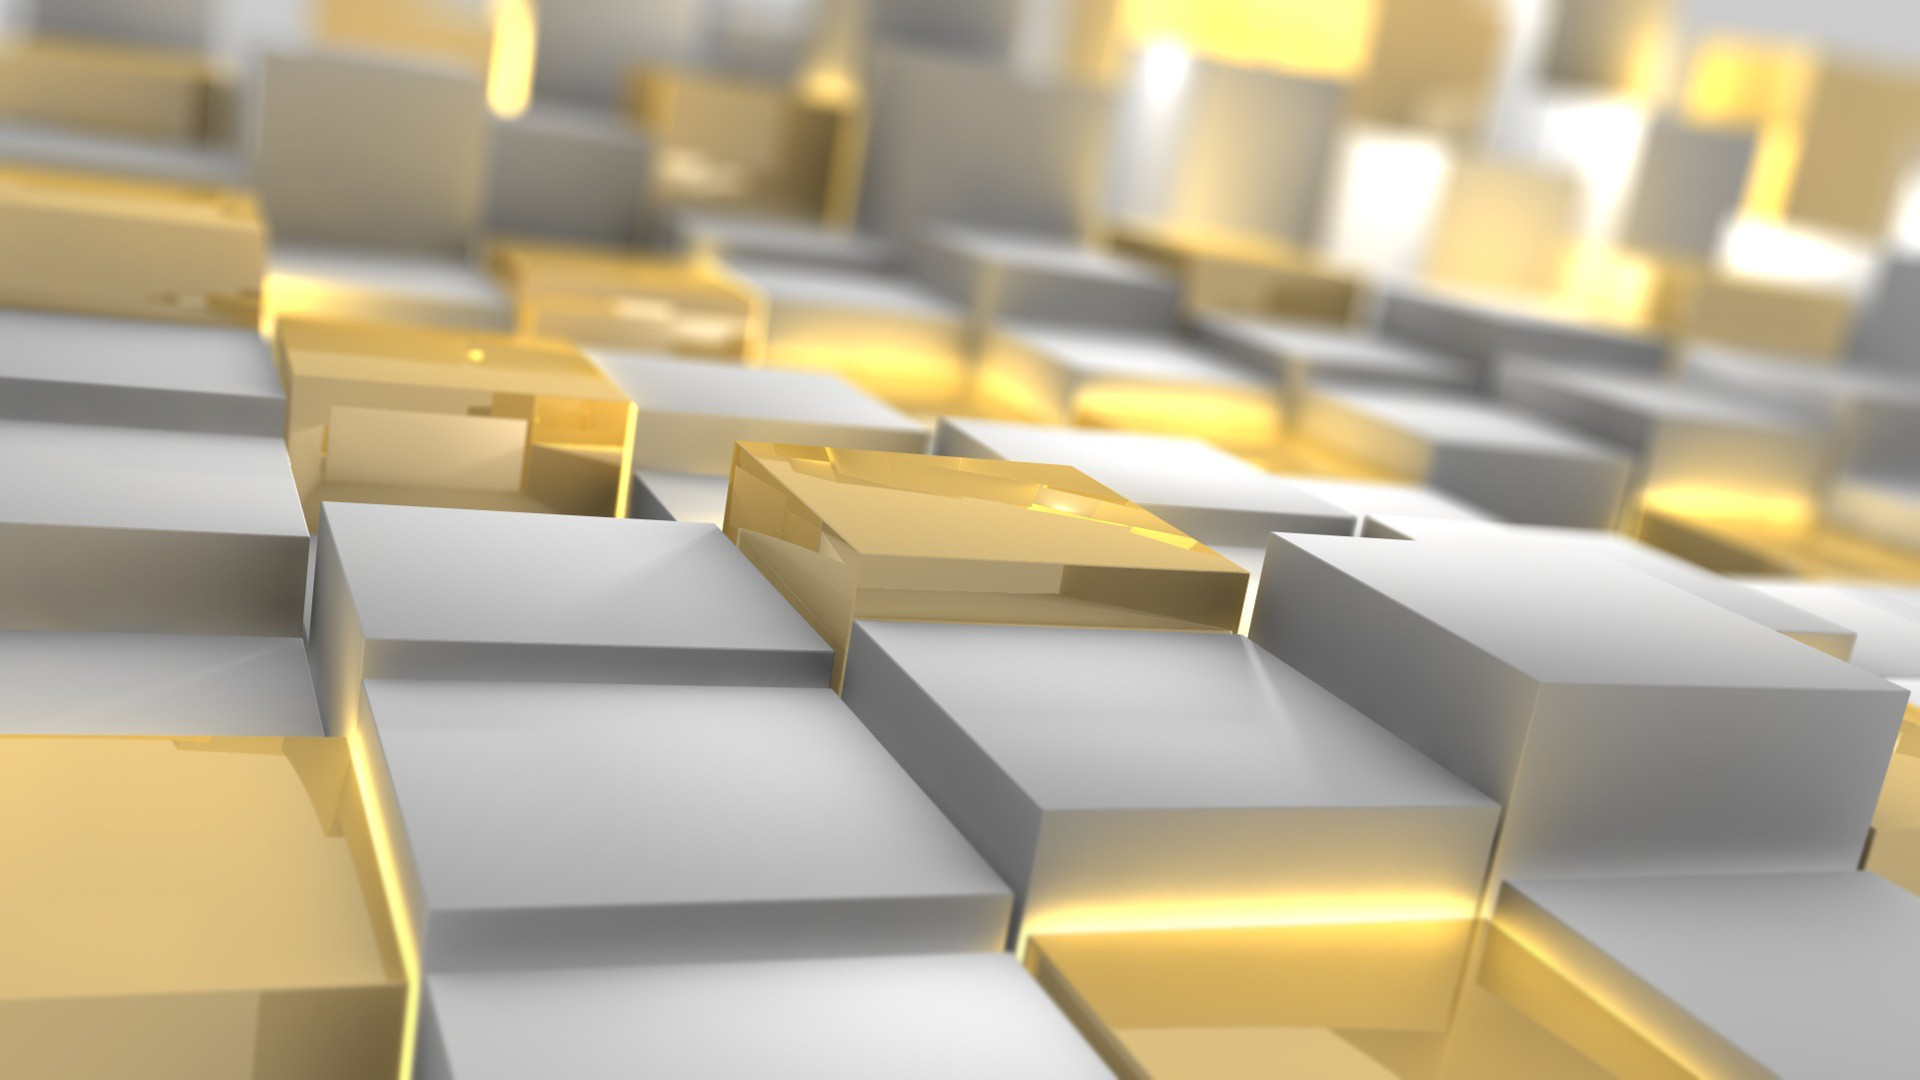 Gold and silver windows 10 wallpaper 3d hd 1920x1080 for Gold 3d wallpaper